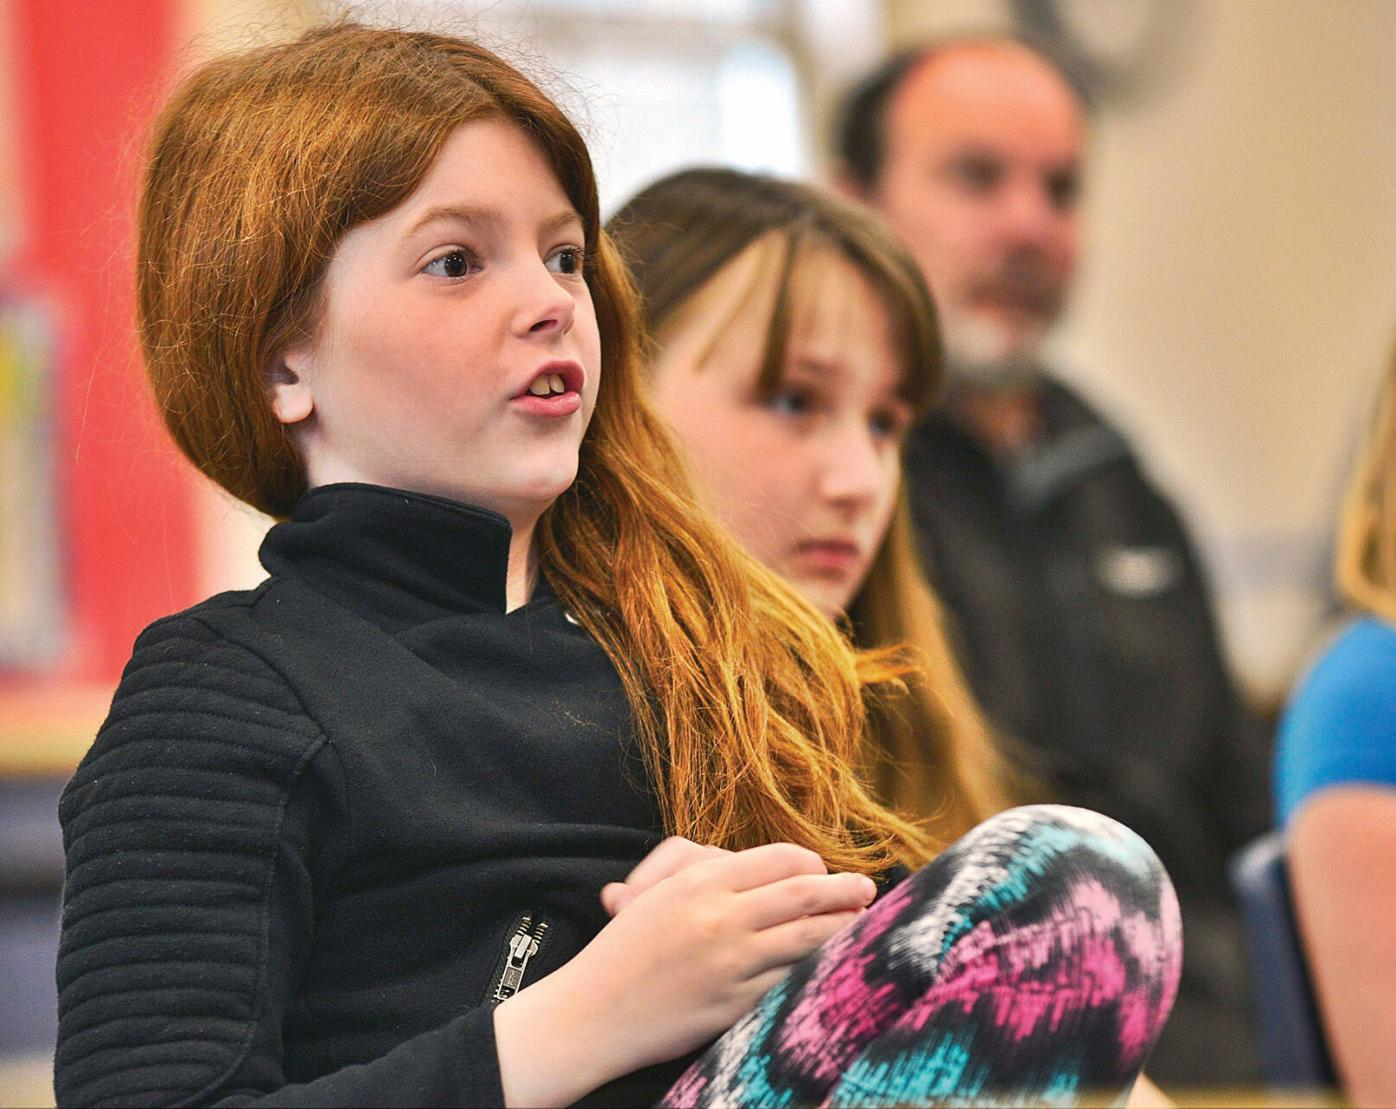 Art program has students learning about town's history